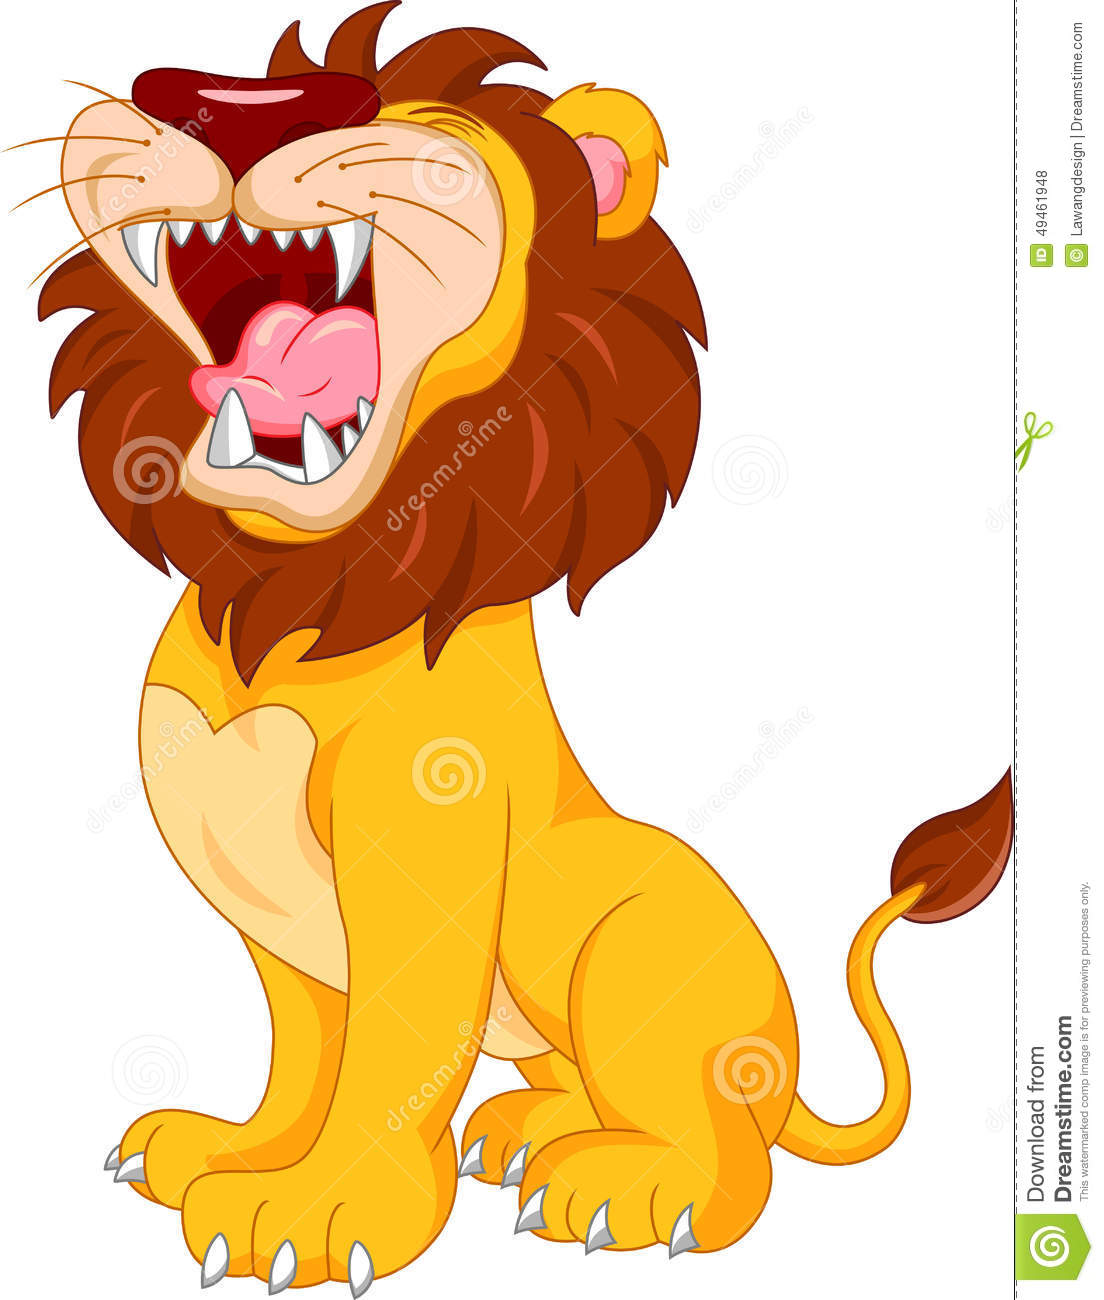 Cute Lion Cartoon Stock Vector - Image: 49461948